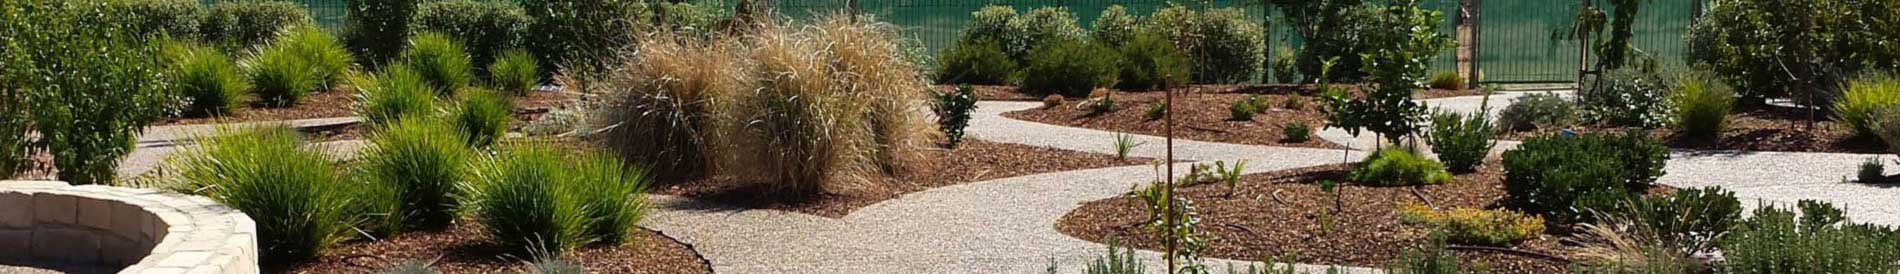 Landscaping canberra mastro 5 design building group for Garden design ideas canberra